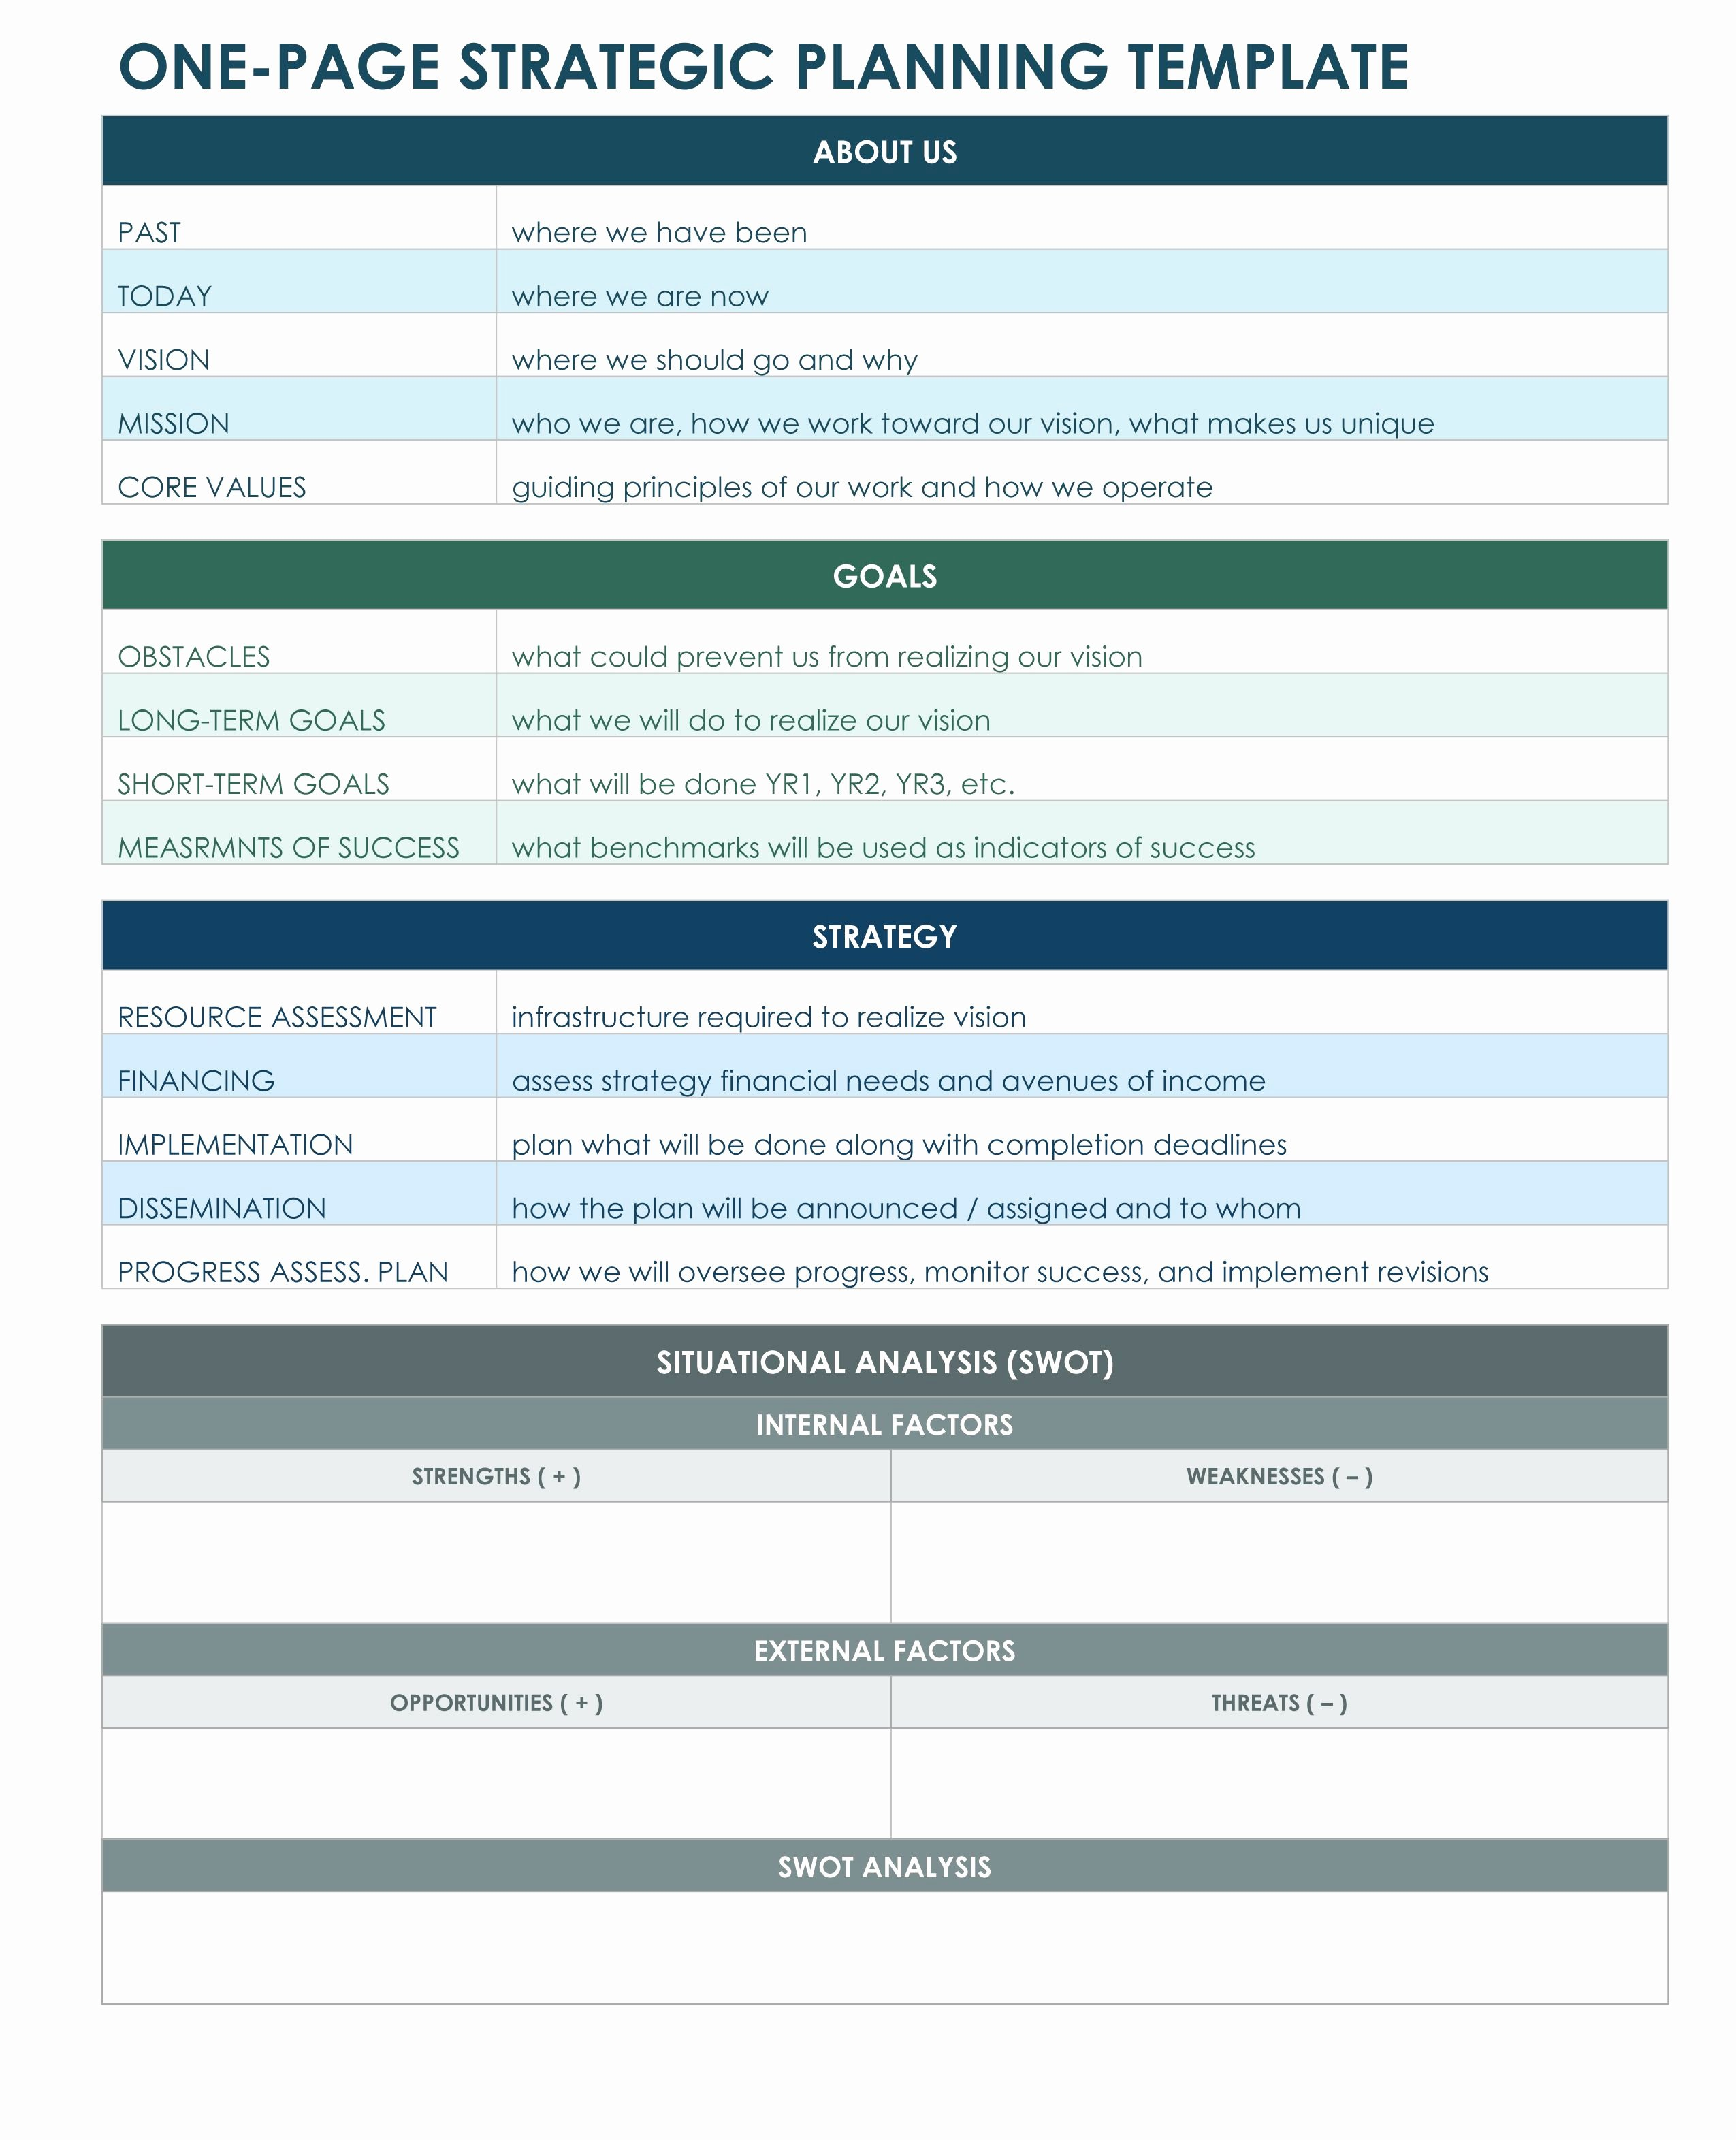 Strategic Plan Template Excel Unique One Page Strategic Plan Excel Template